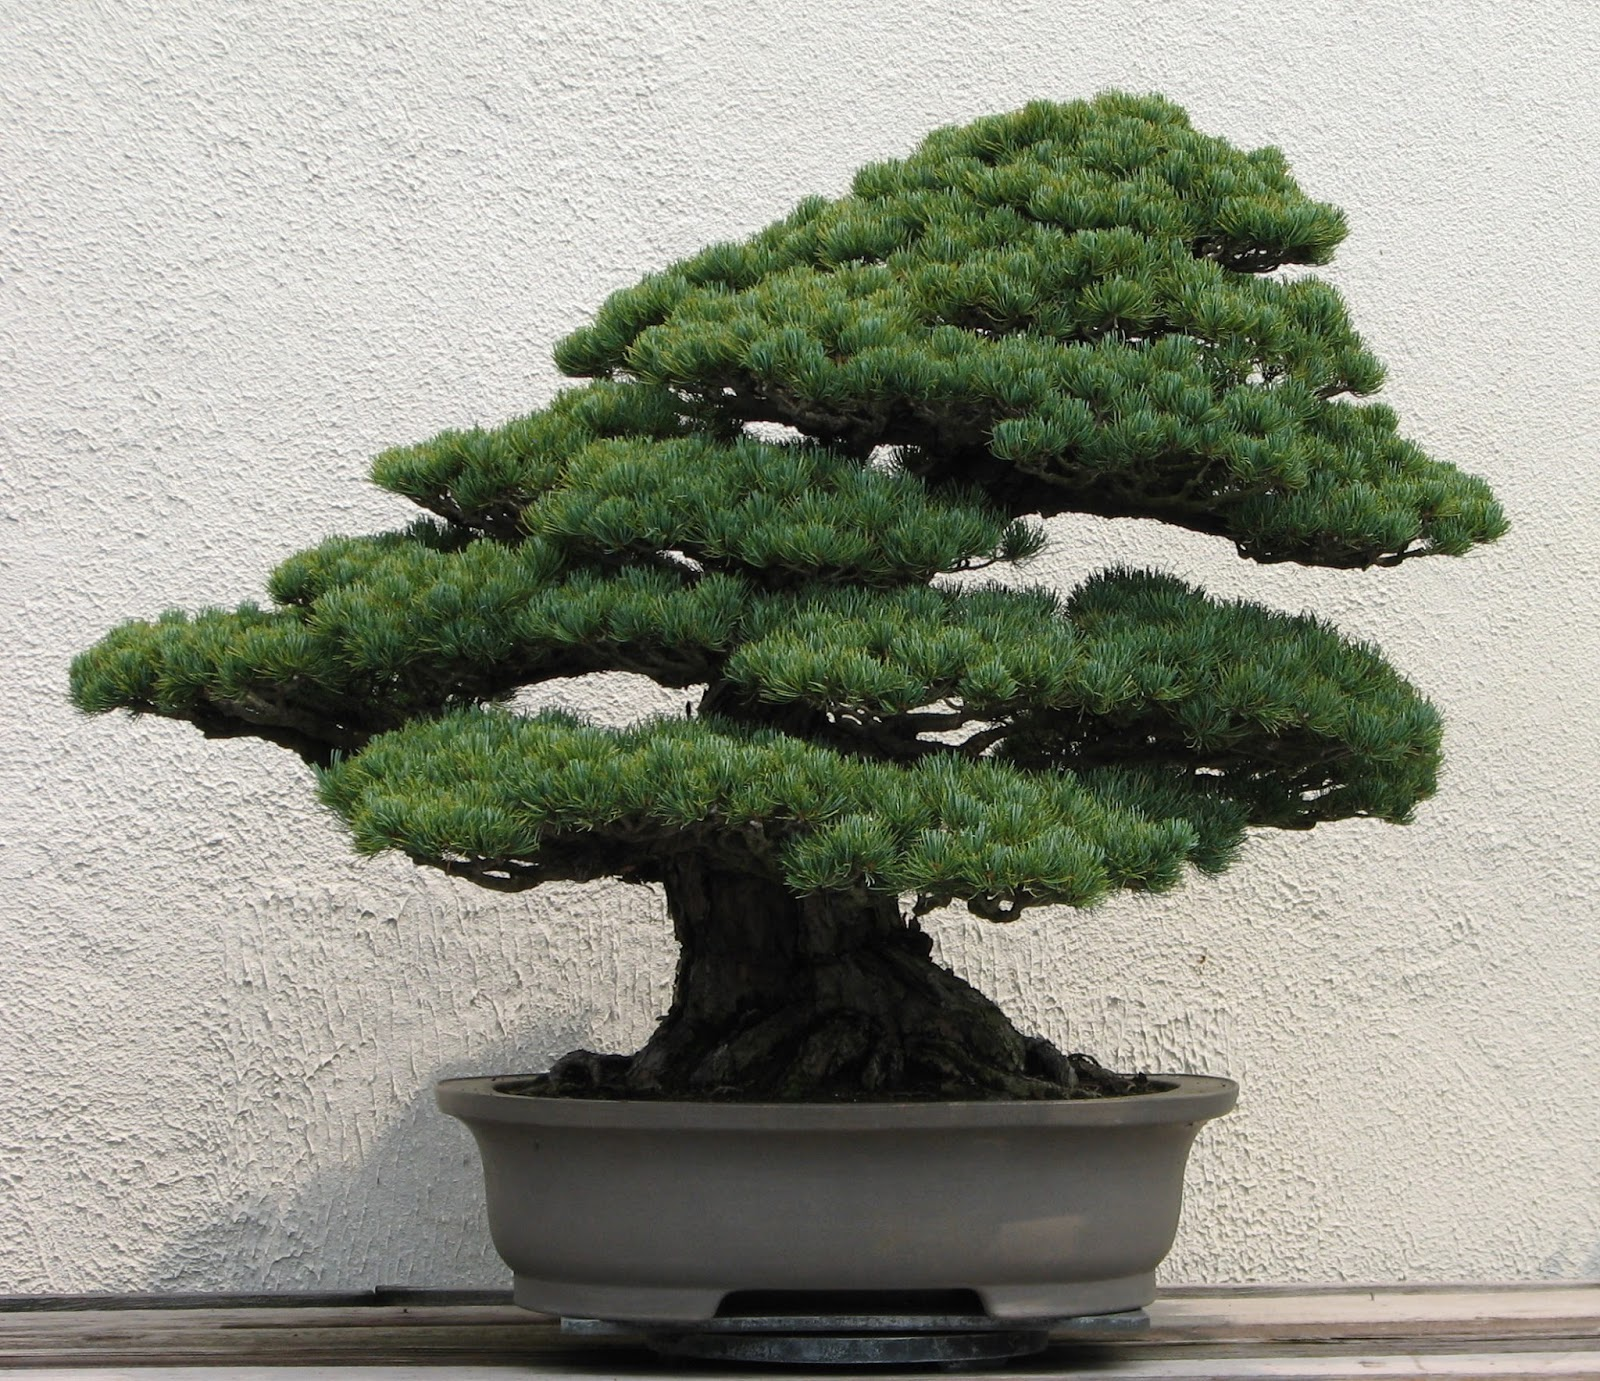 The Little Bonsai Bonsai Japanese White Pines